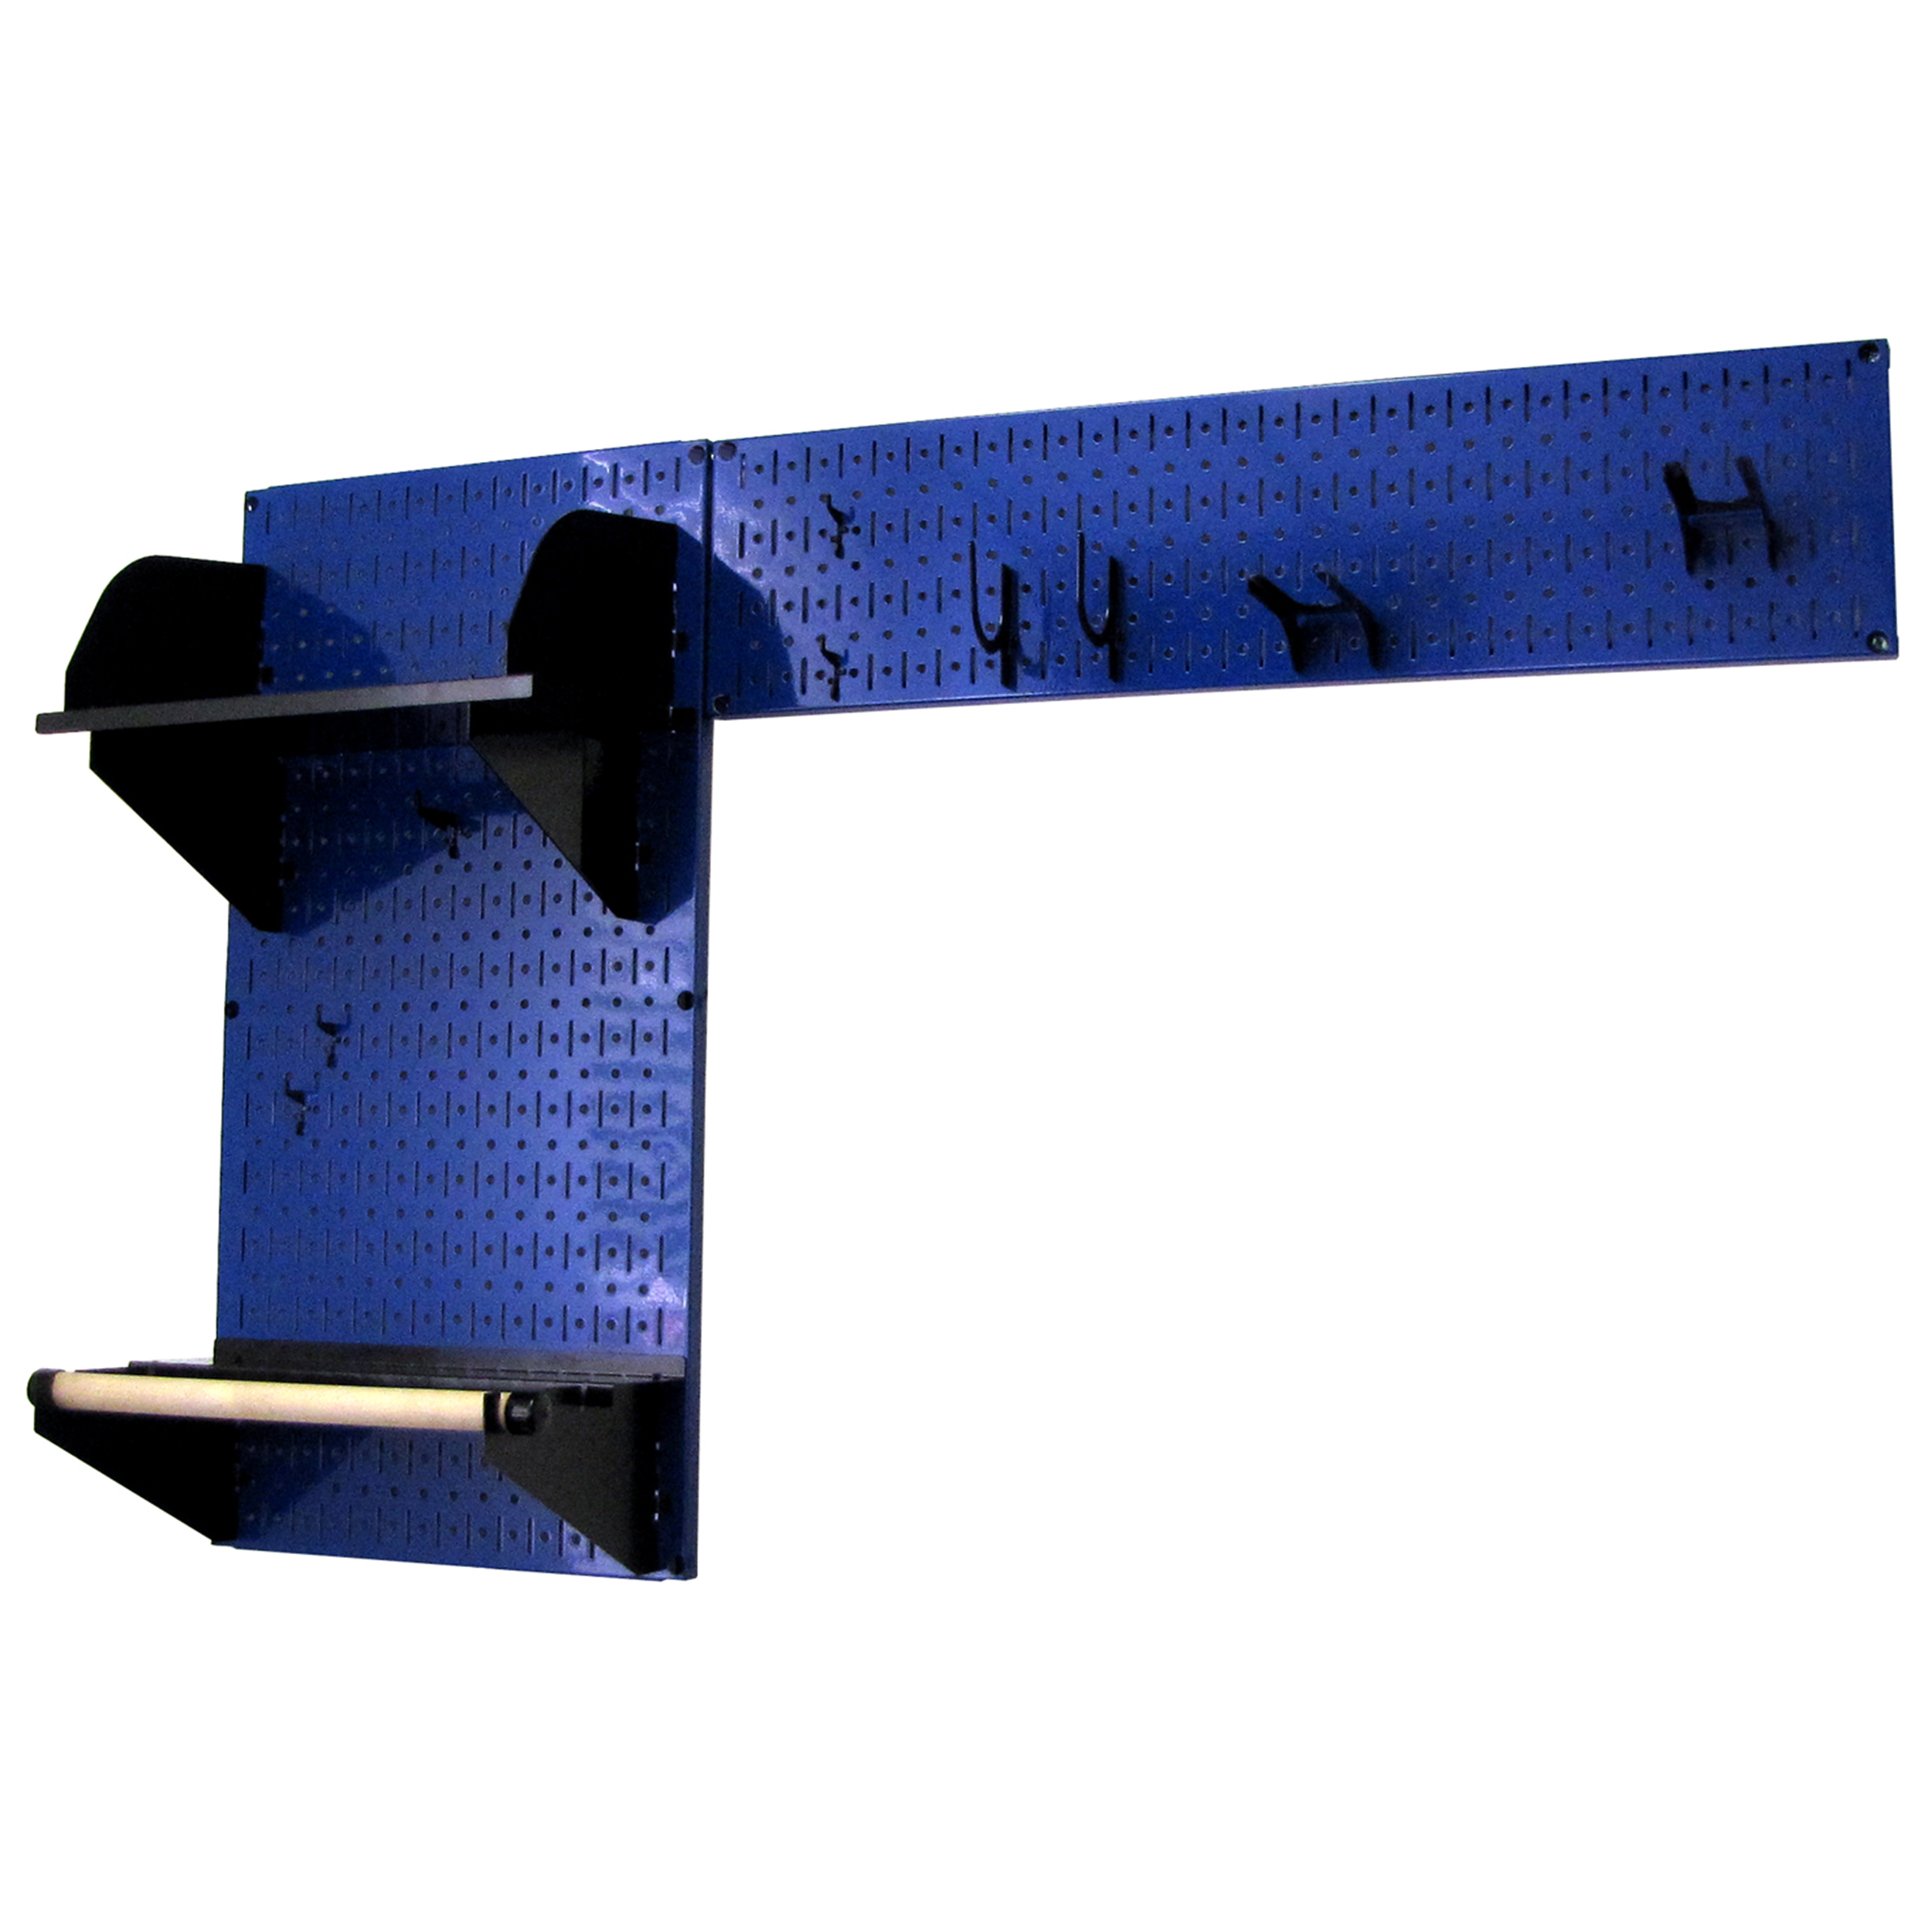 Pegboard Garden Tool Board Organizer with Blue Pegboard and Black Accessories